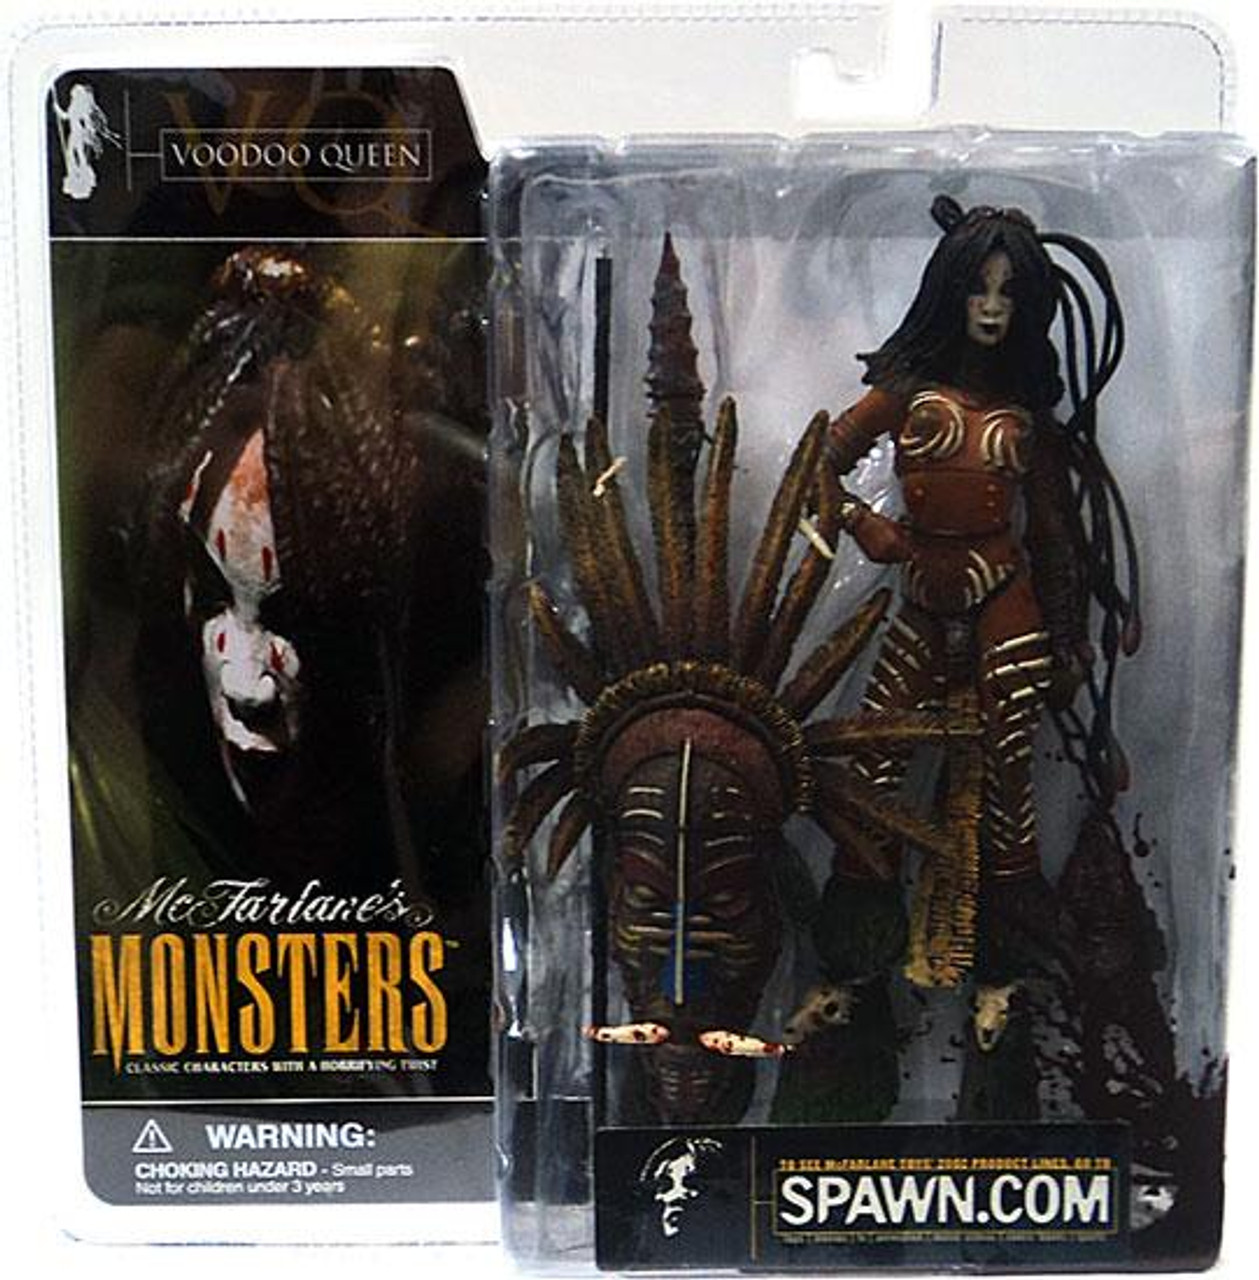 McFarlane Toys McFarlane's Monsters Series 1 Voodoo Queen Action Figure [Blood Splattered Package Variant]